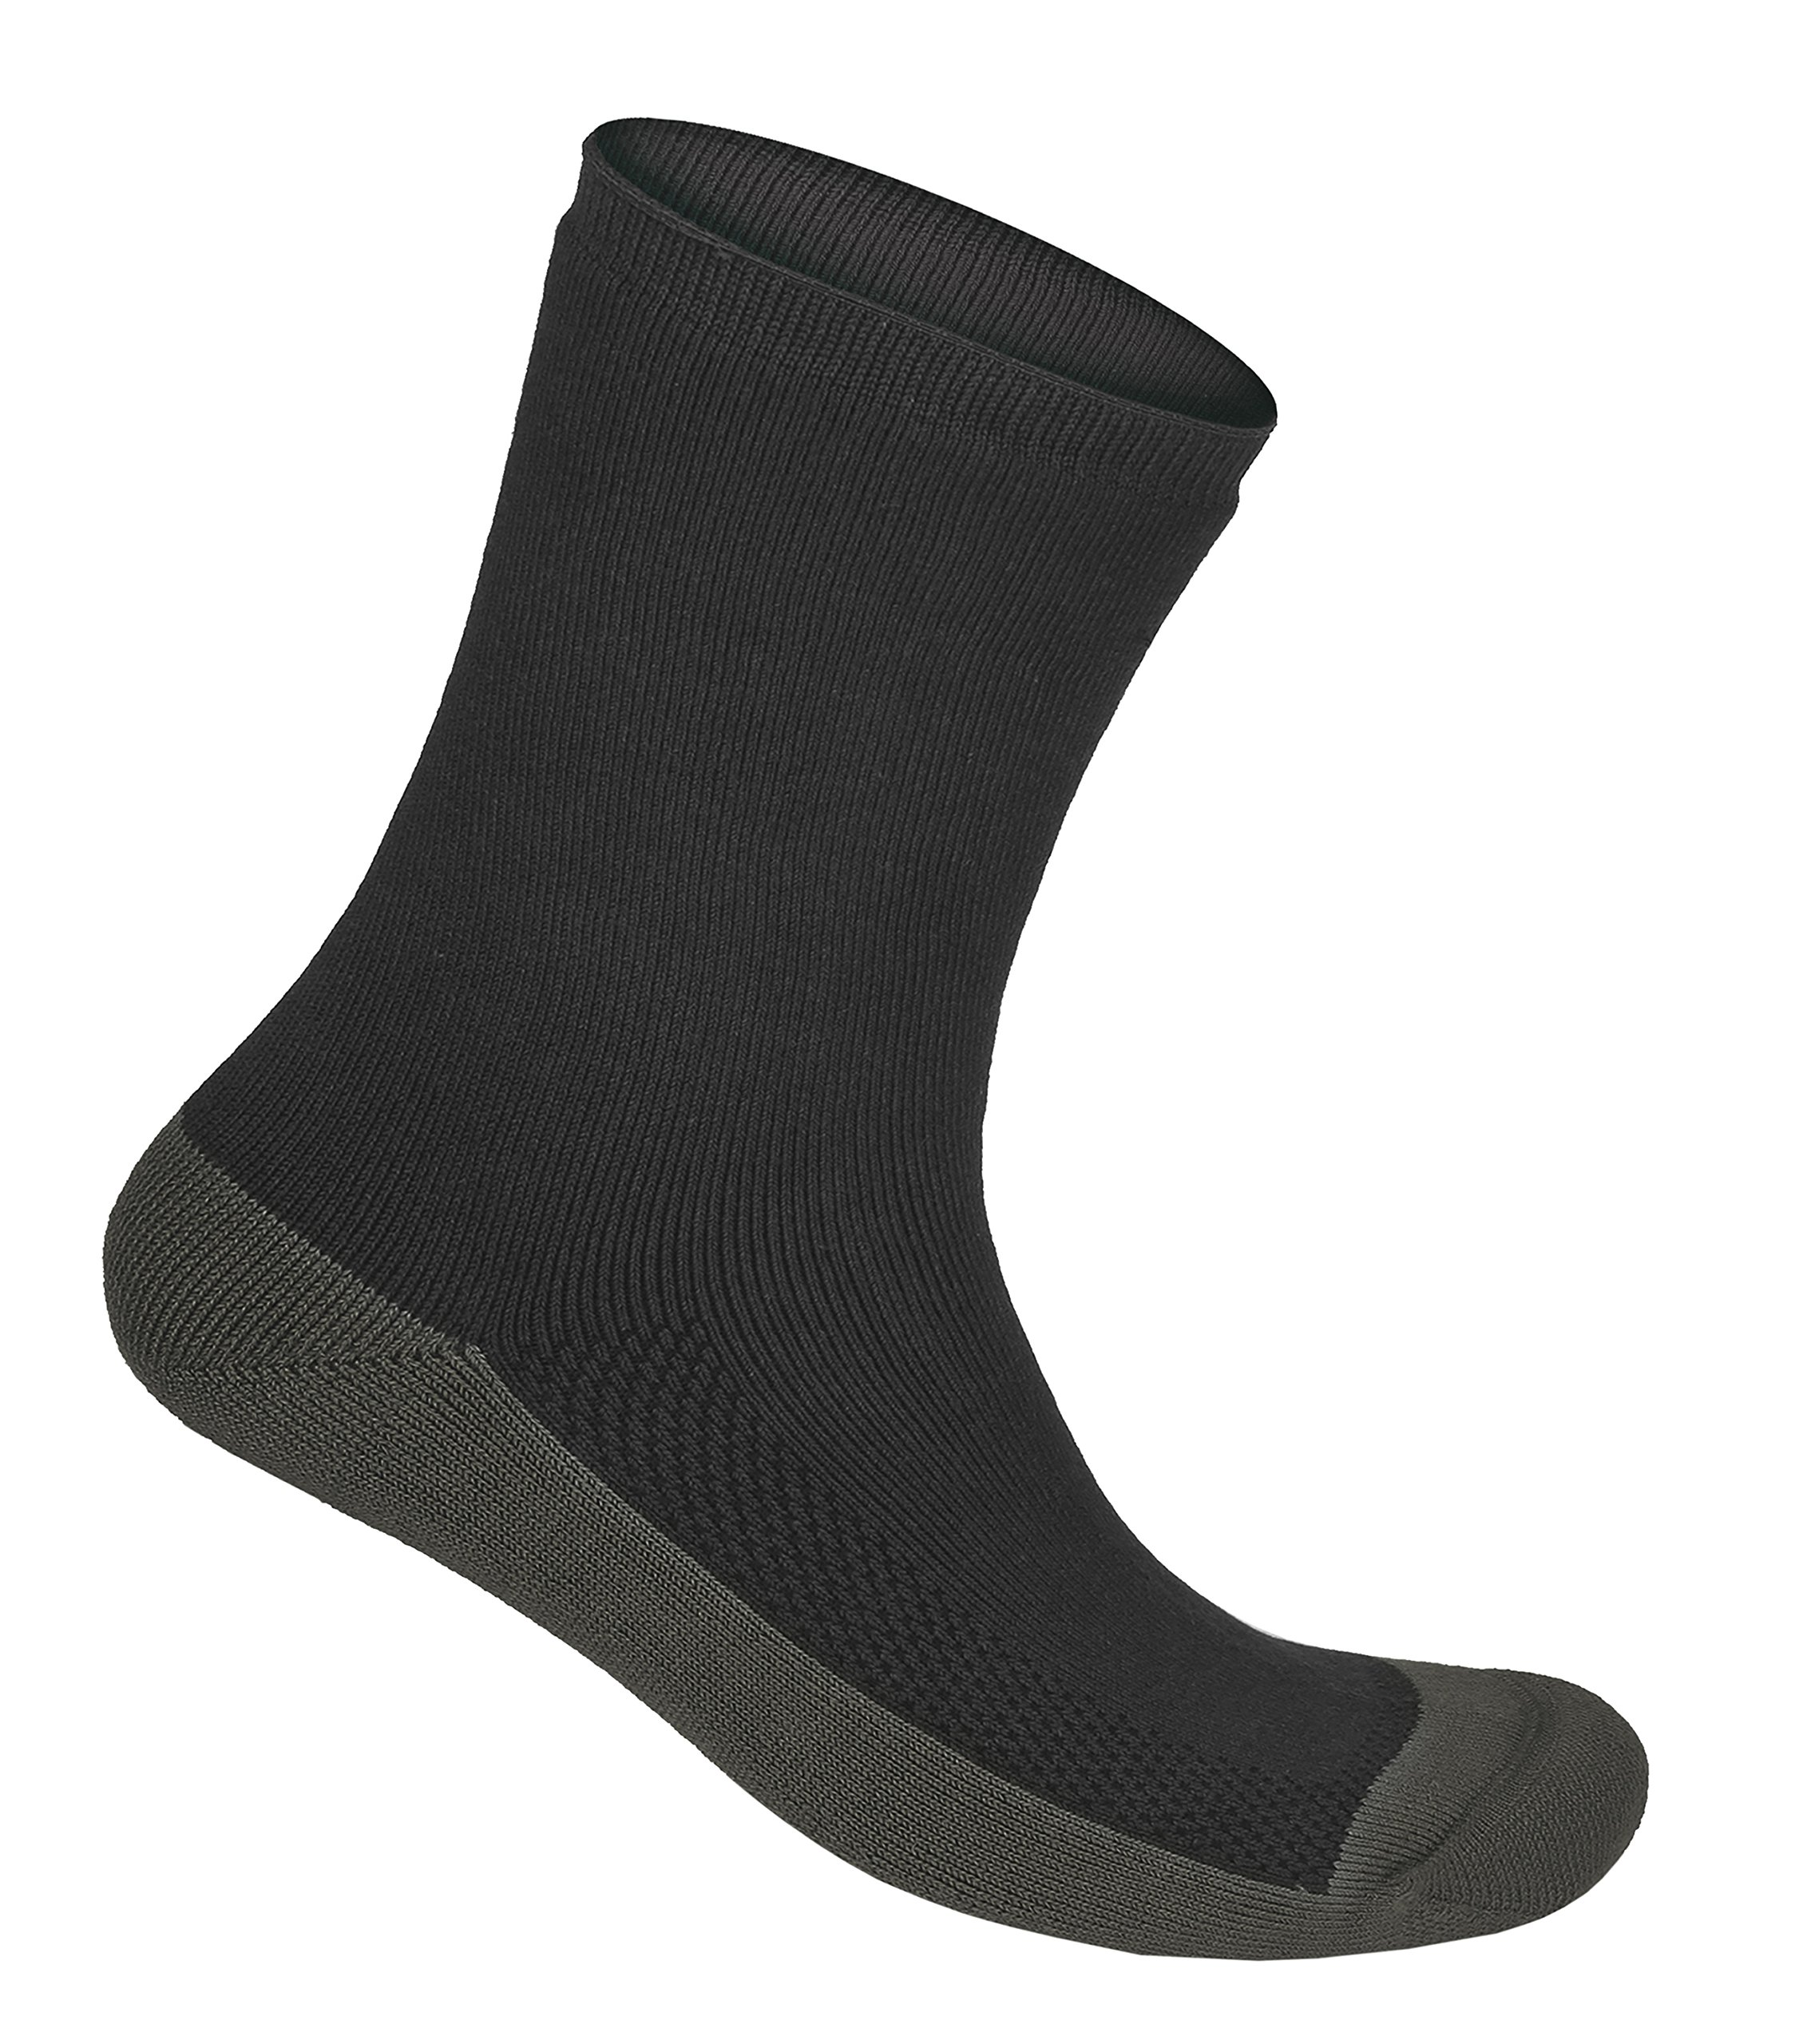 Orthofeet Extra Roomy Non-Binding Non-Constrictive Circulation Seam Free Bamboo Socks Charcoal, 3 Pack Large